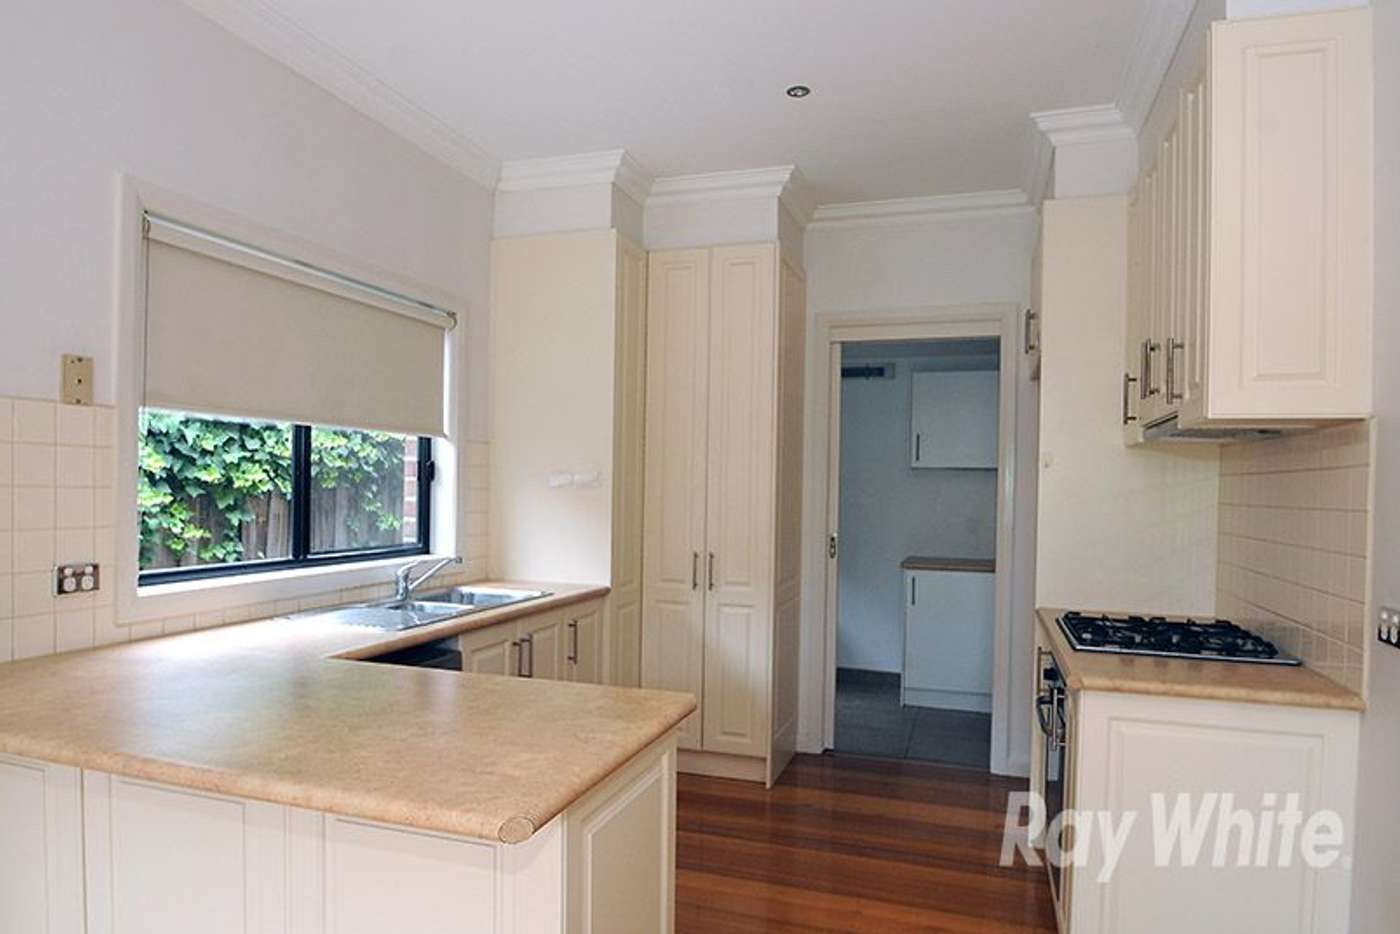 Main view of Homely unit listing, 2/13 Illuka Crescent, Mount Waverley VIC 3149